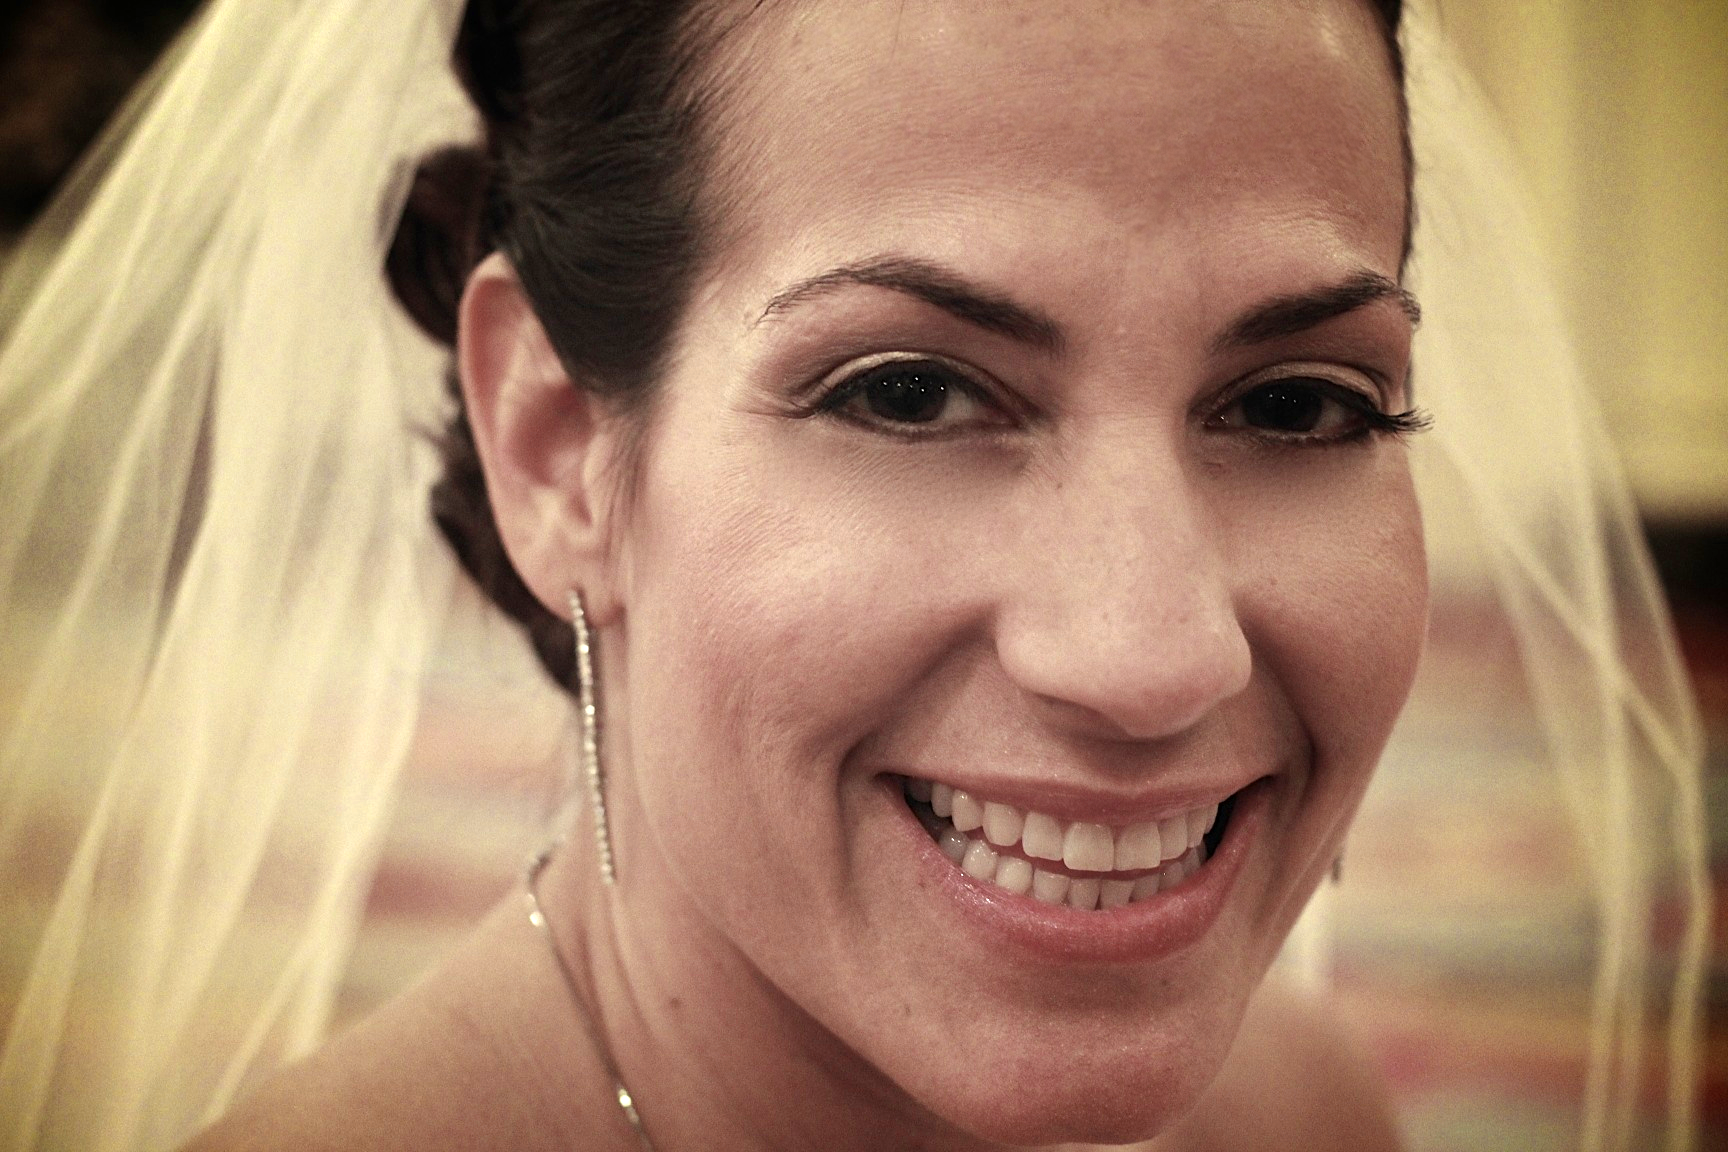 Makeup - Weinberg Wedding #3 edited.png